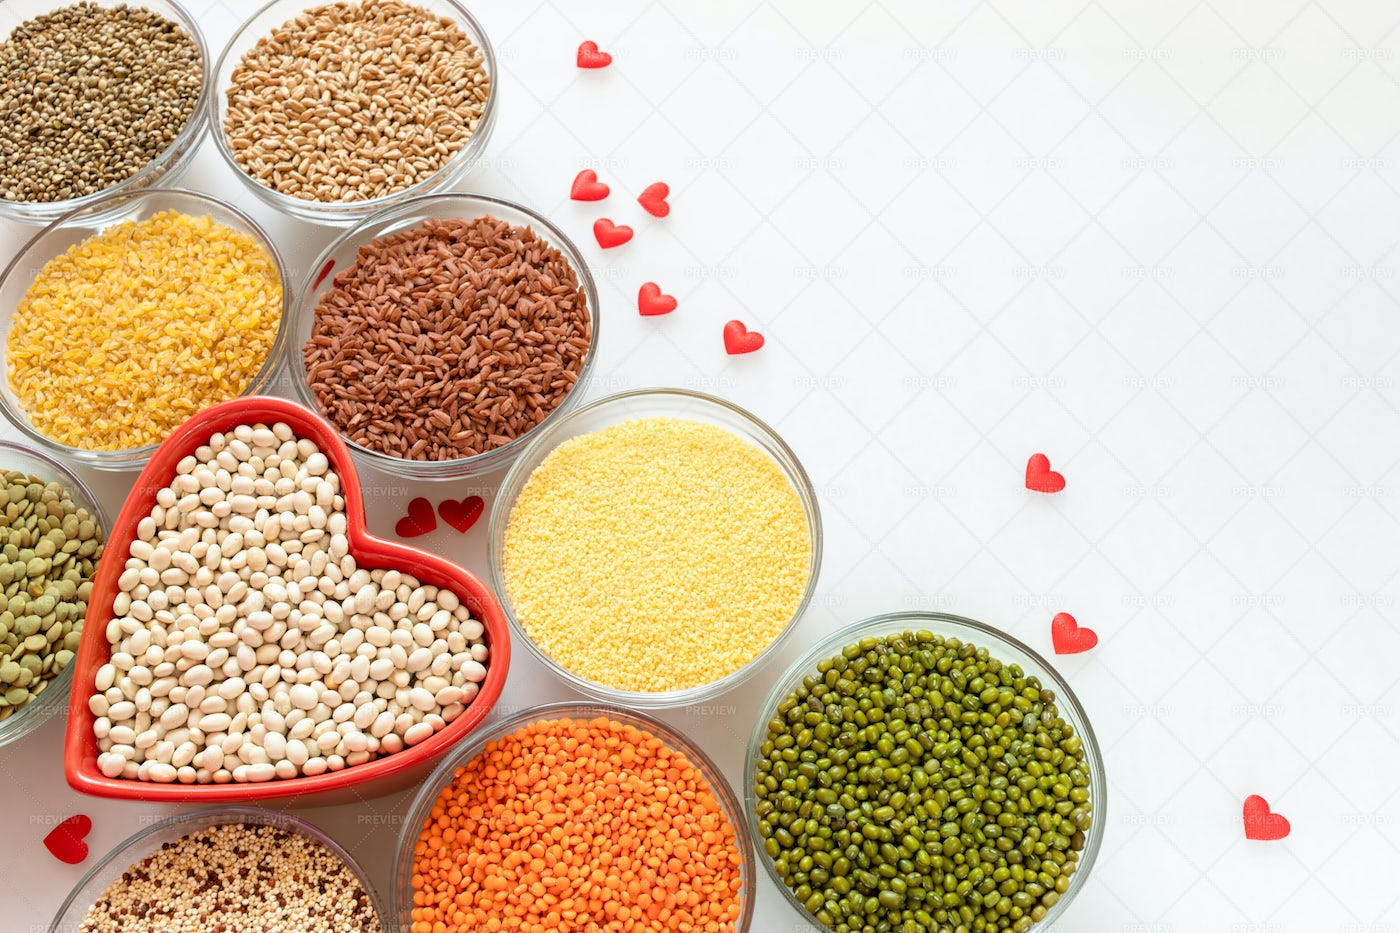 Bowls Of Grains Background: Stock Photos